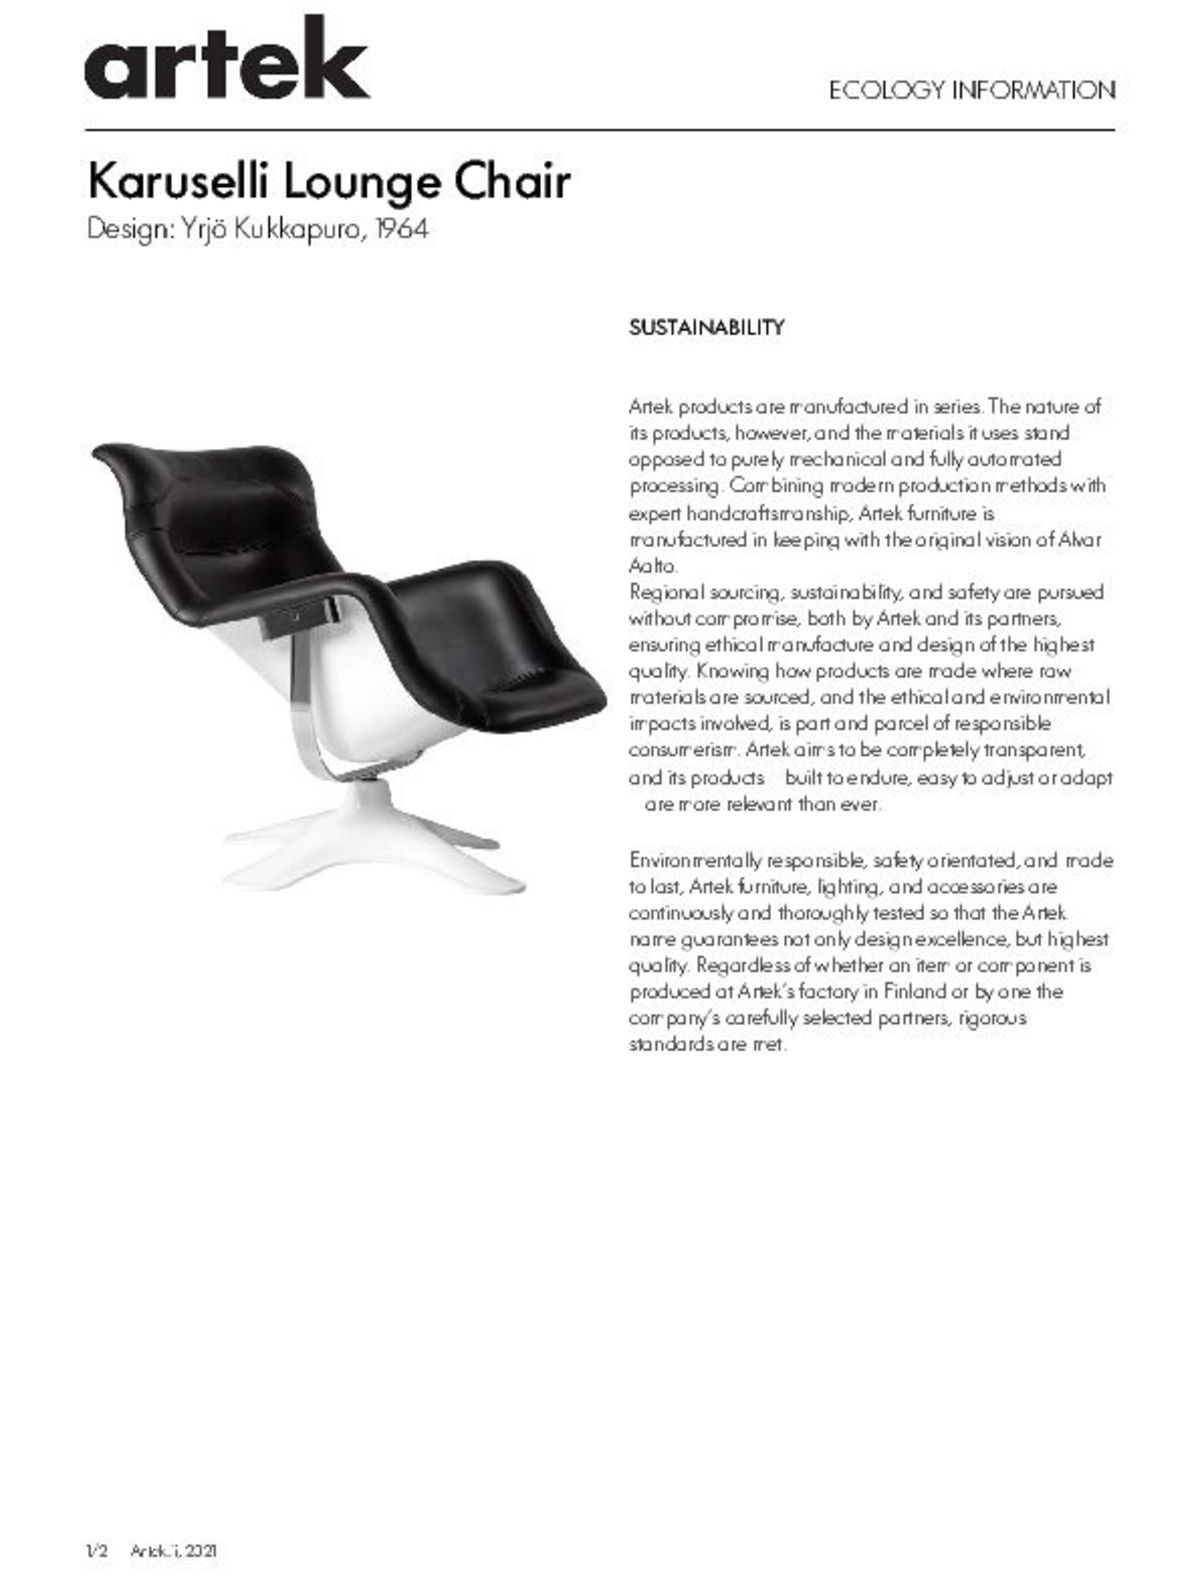 Ecology-Document_Karuselli_Lounge_Chair-130826129